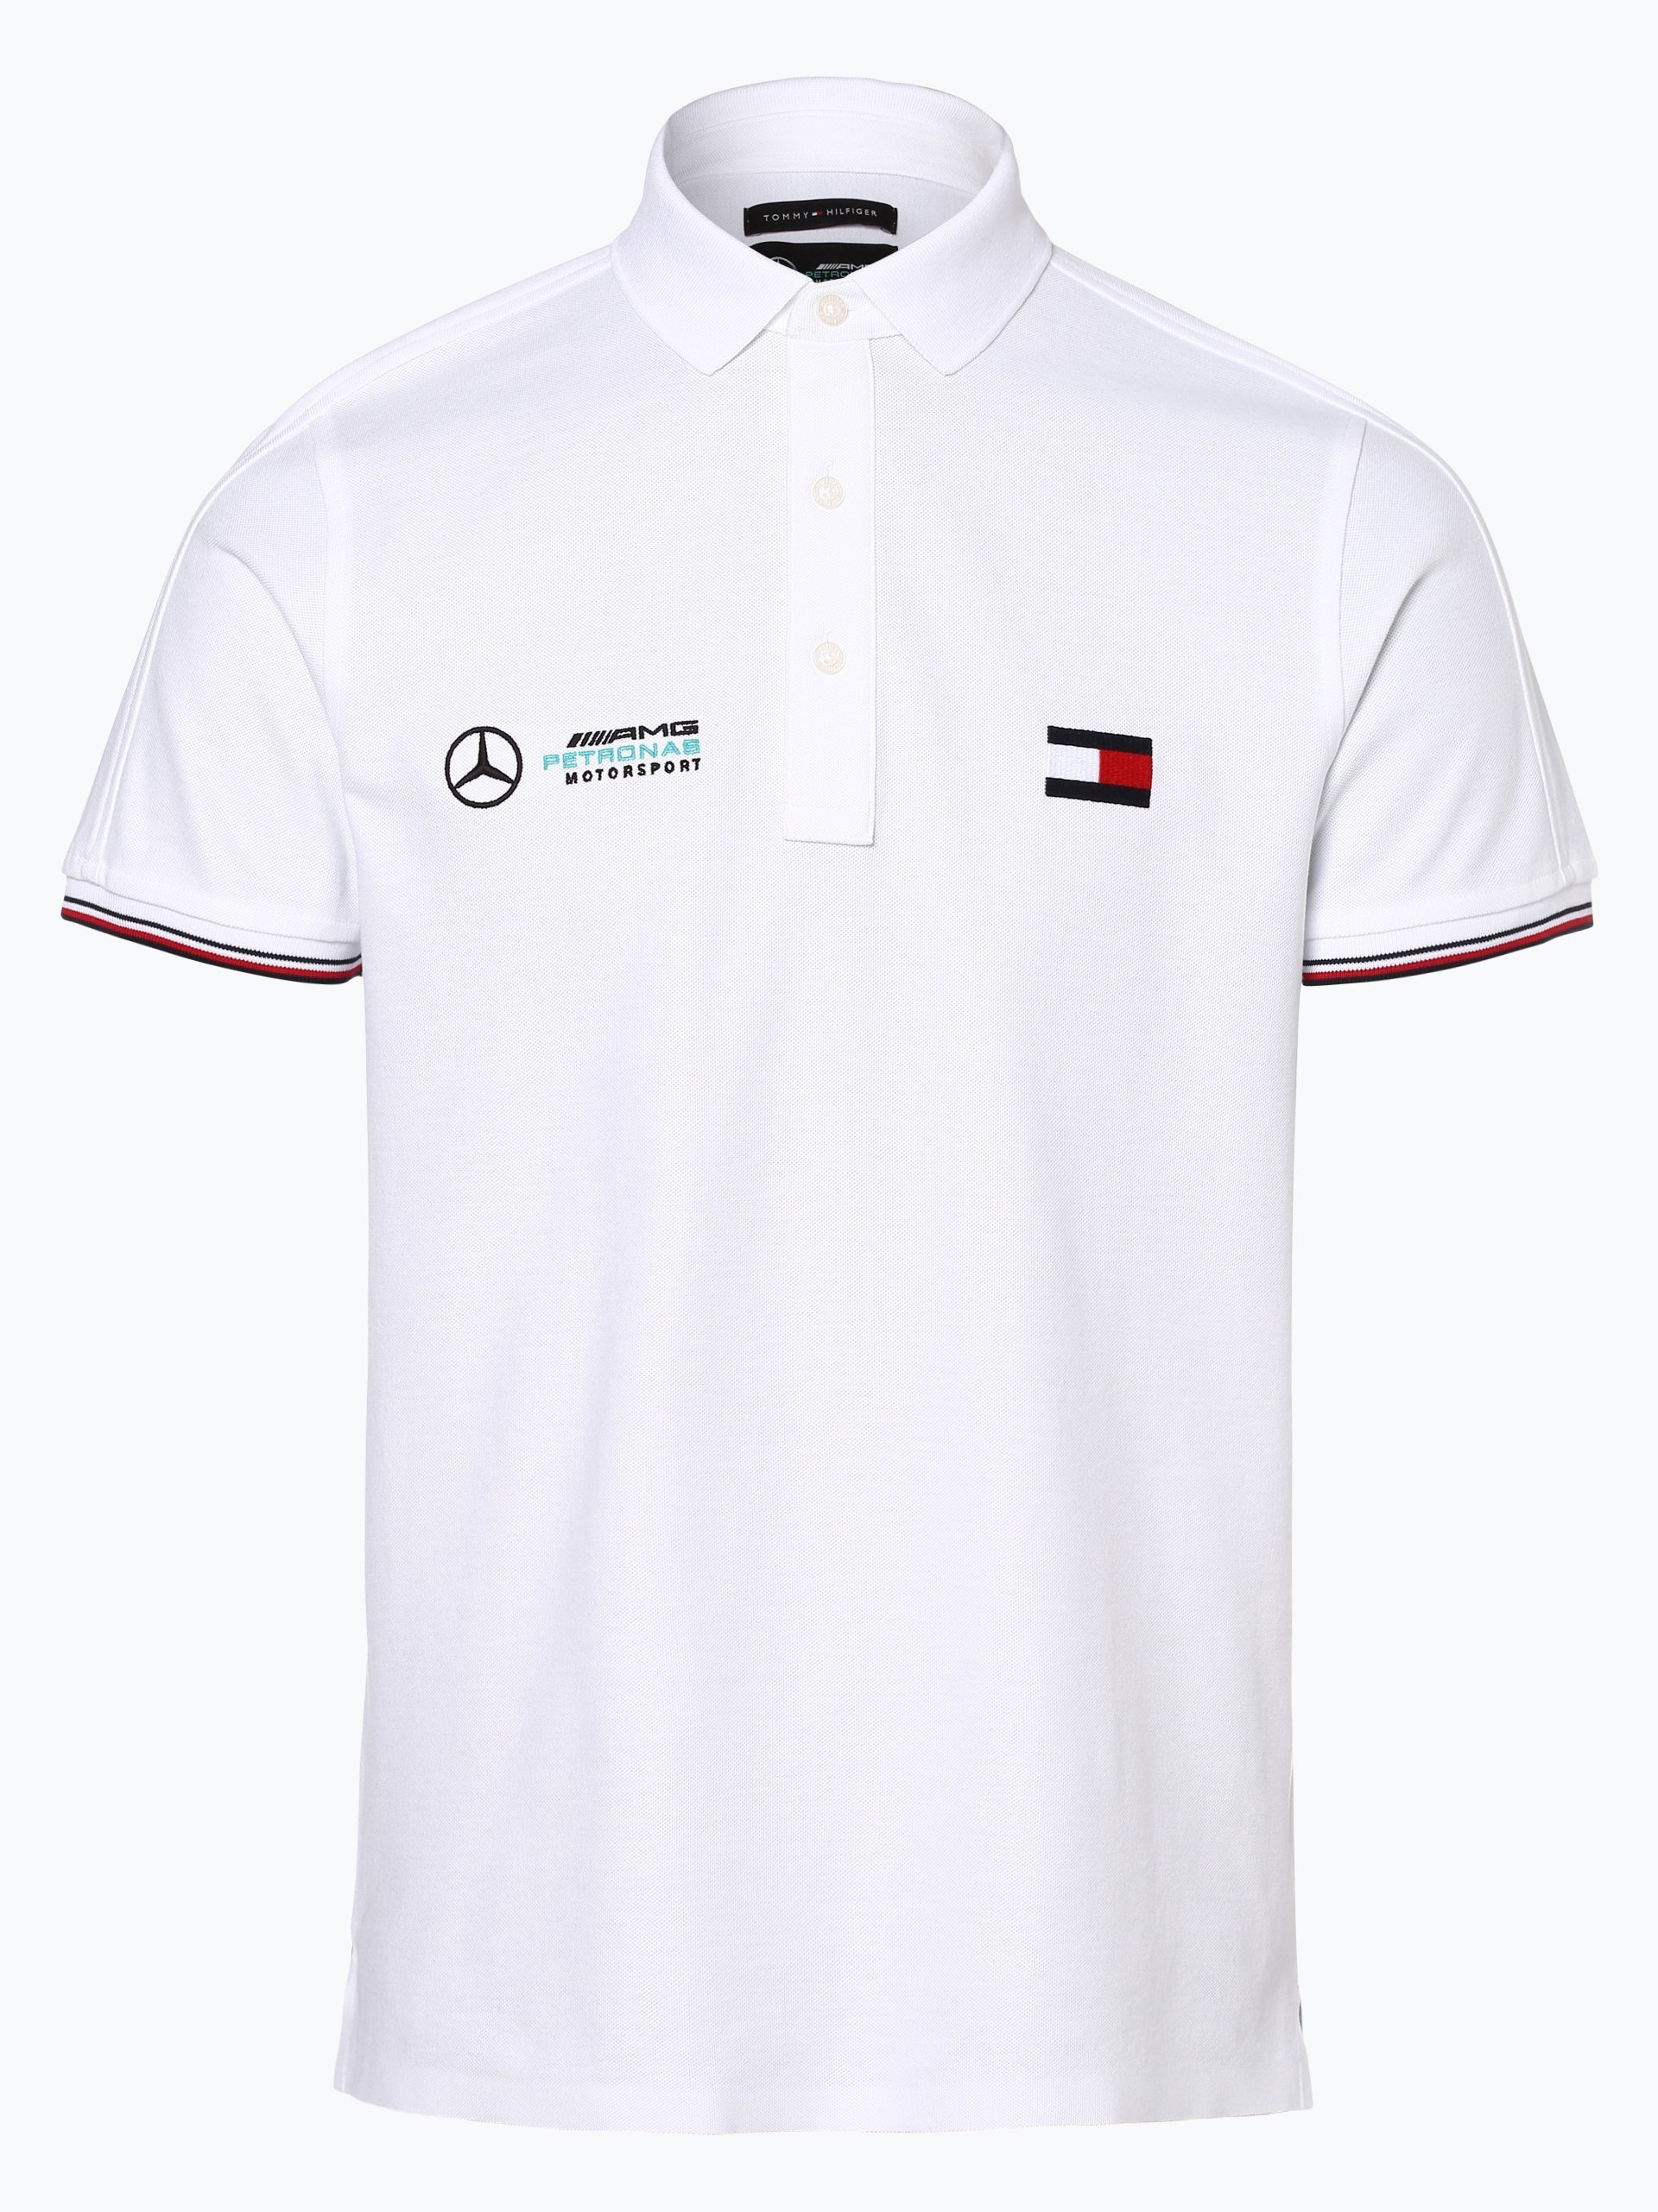 tommy hilfiger mercedes benz herren poloshirt online. Black Bedroom Furniture Sets. Home Design Ideas